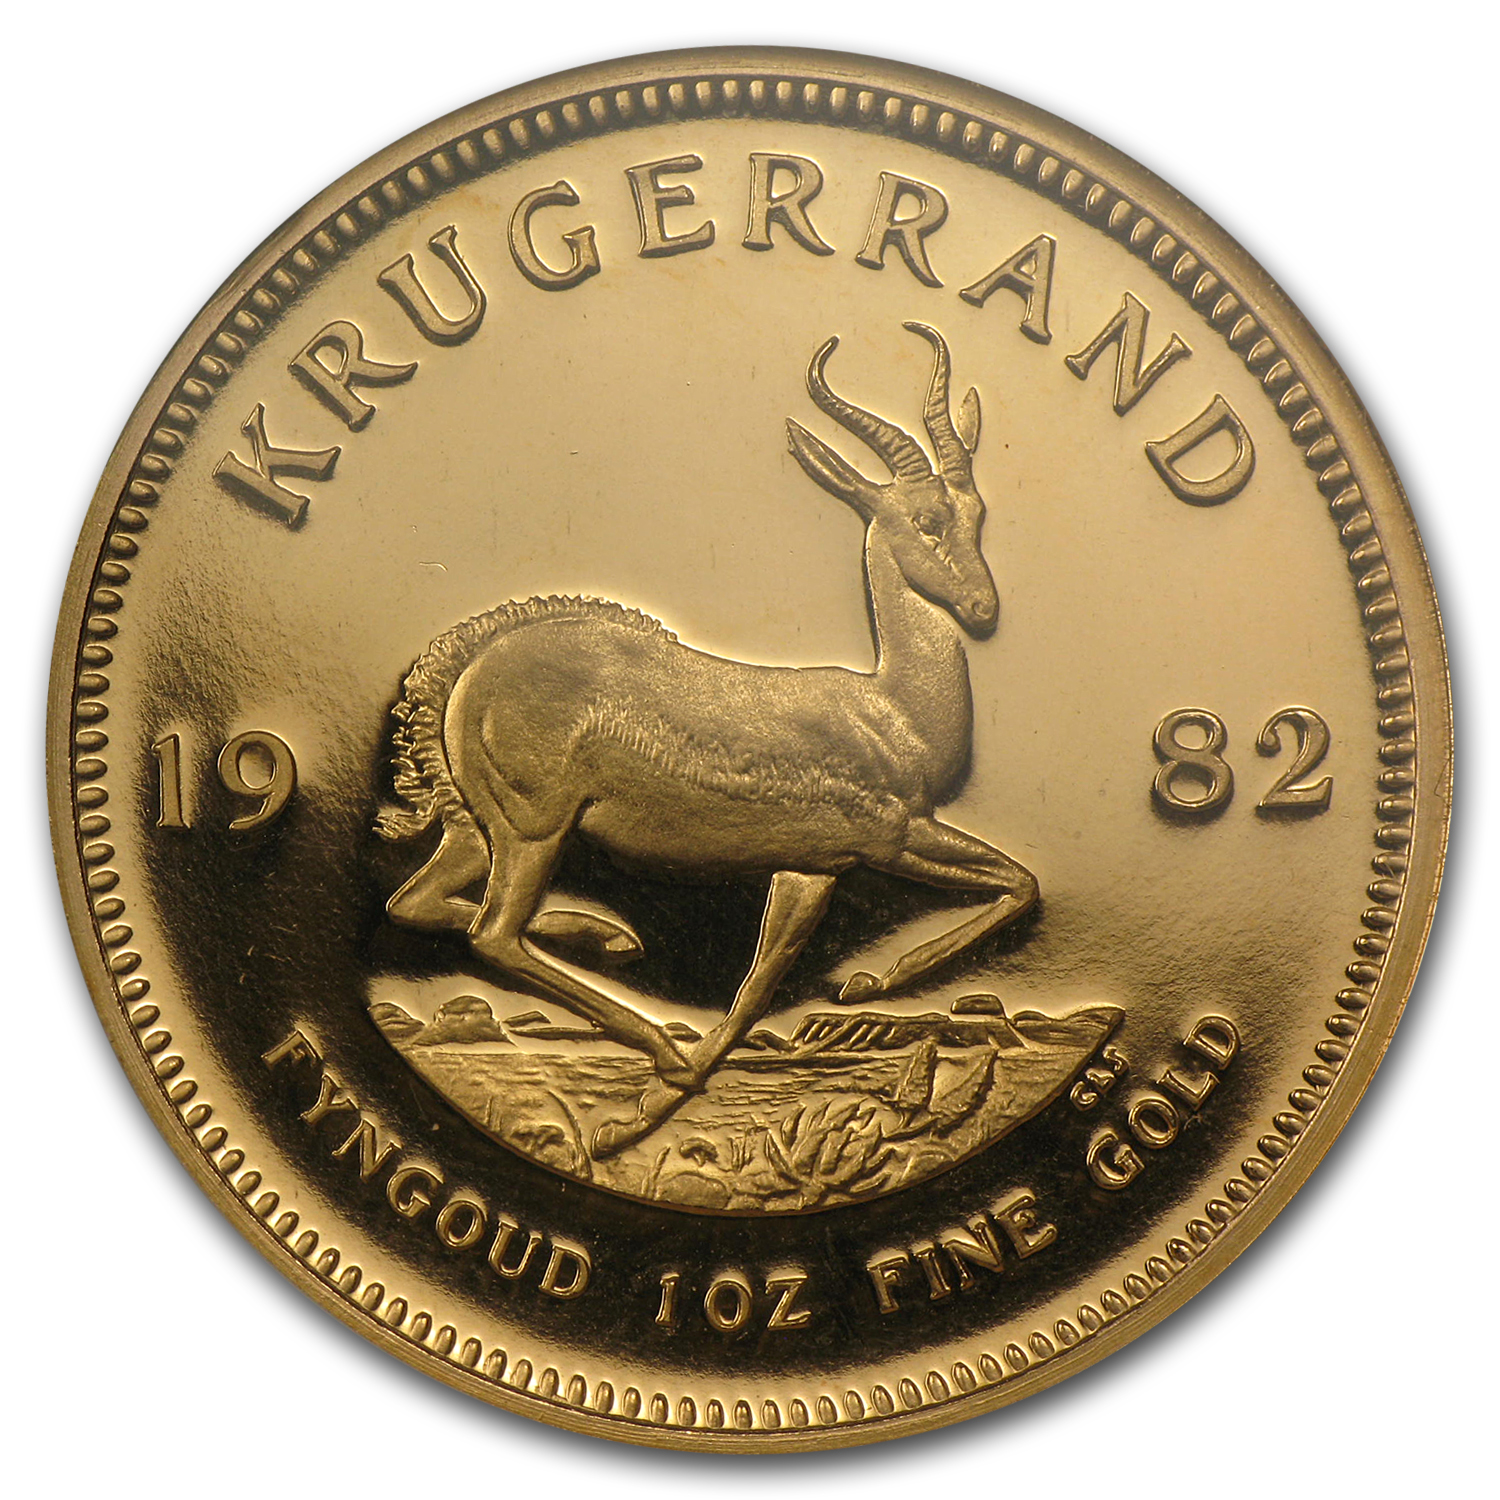 1982 1 oz Gold South African Krugerrand PF-67 NGC